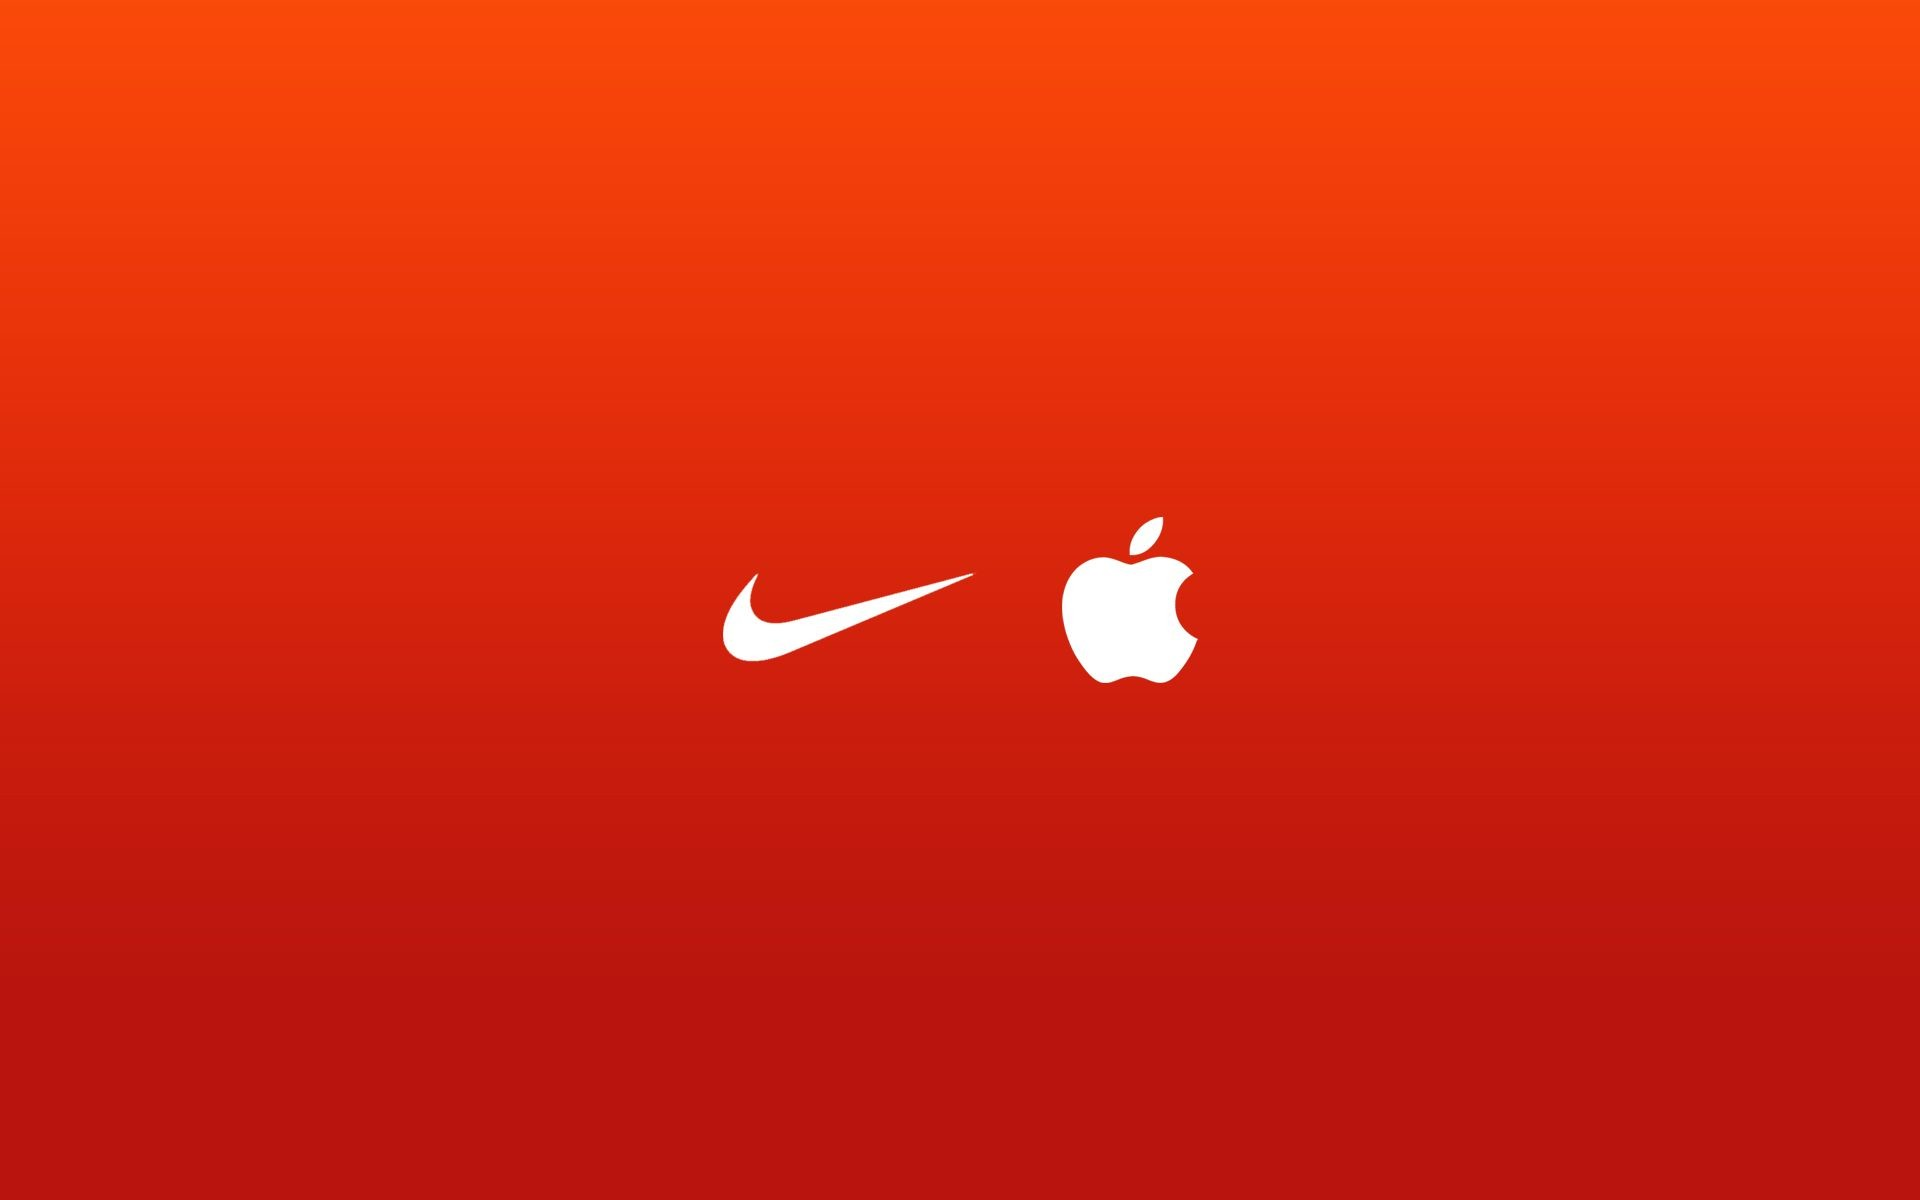 Nike Wallpaper Just Do It 67 Pictures